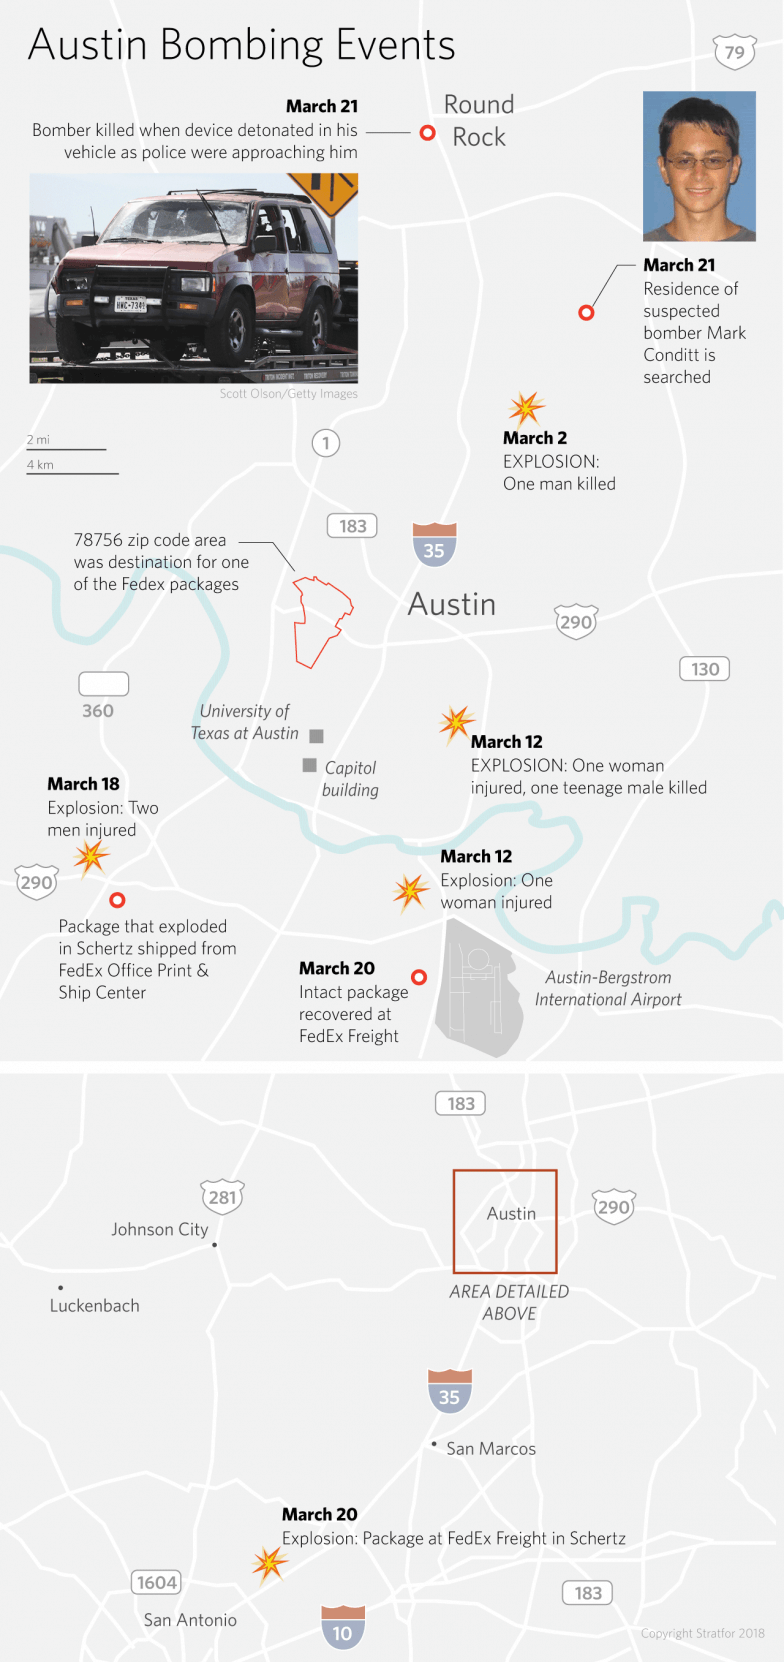 The series of events in the Austin bombing spree